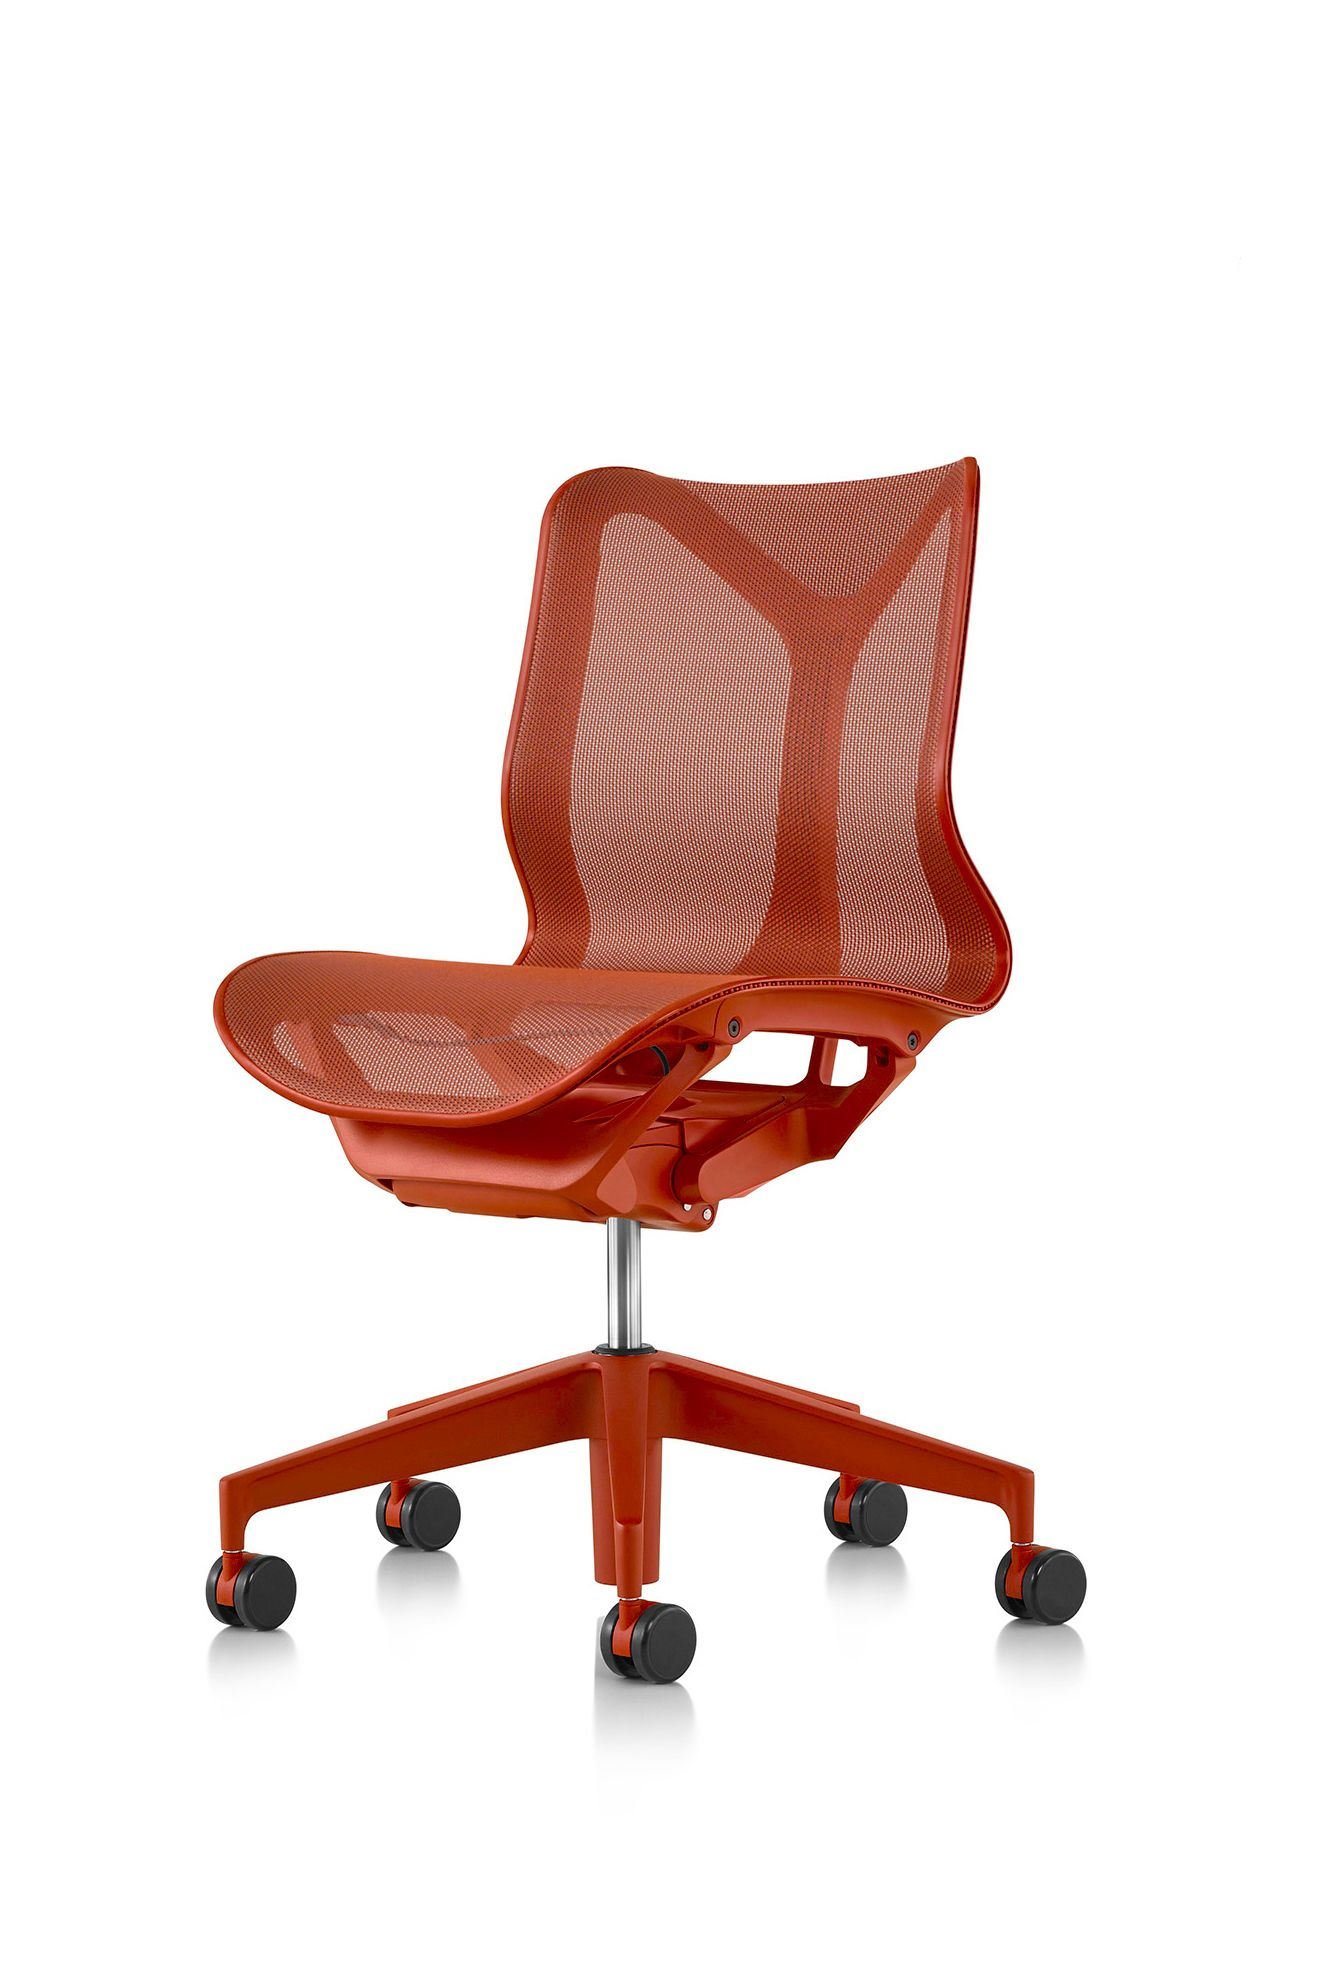 Chairs Comfortable Cosm Chairs In 2019 Chairs Ergonomic Office Chair Chair